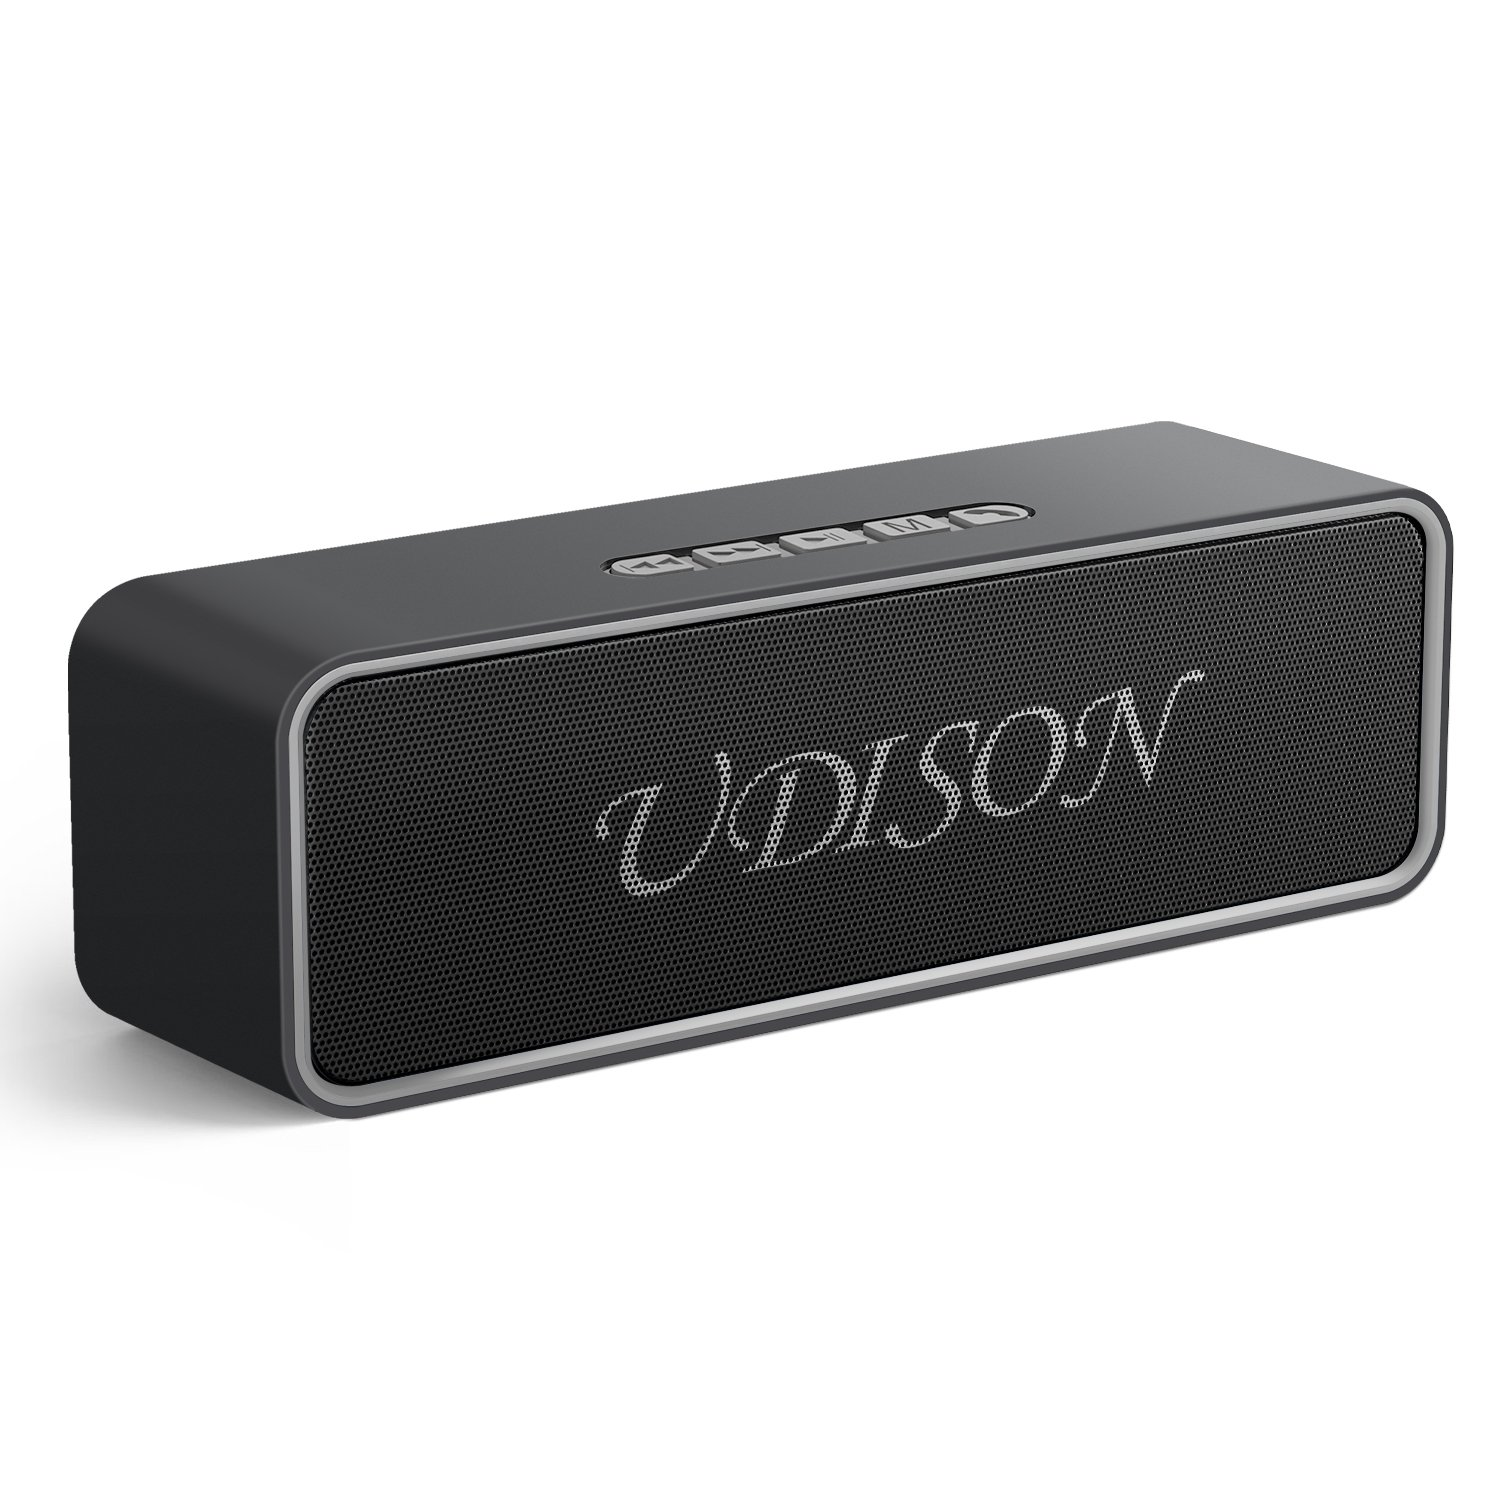 UDISON Wireless Bluetooth 5.0 Speakers, Outdoor Portable Stereo Speaker with 10W Rich Bass,164-328 ft,12-Hour Playtime,Built-in Mic Handsfree, USB Port &TF Card Slot